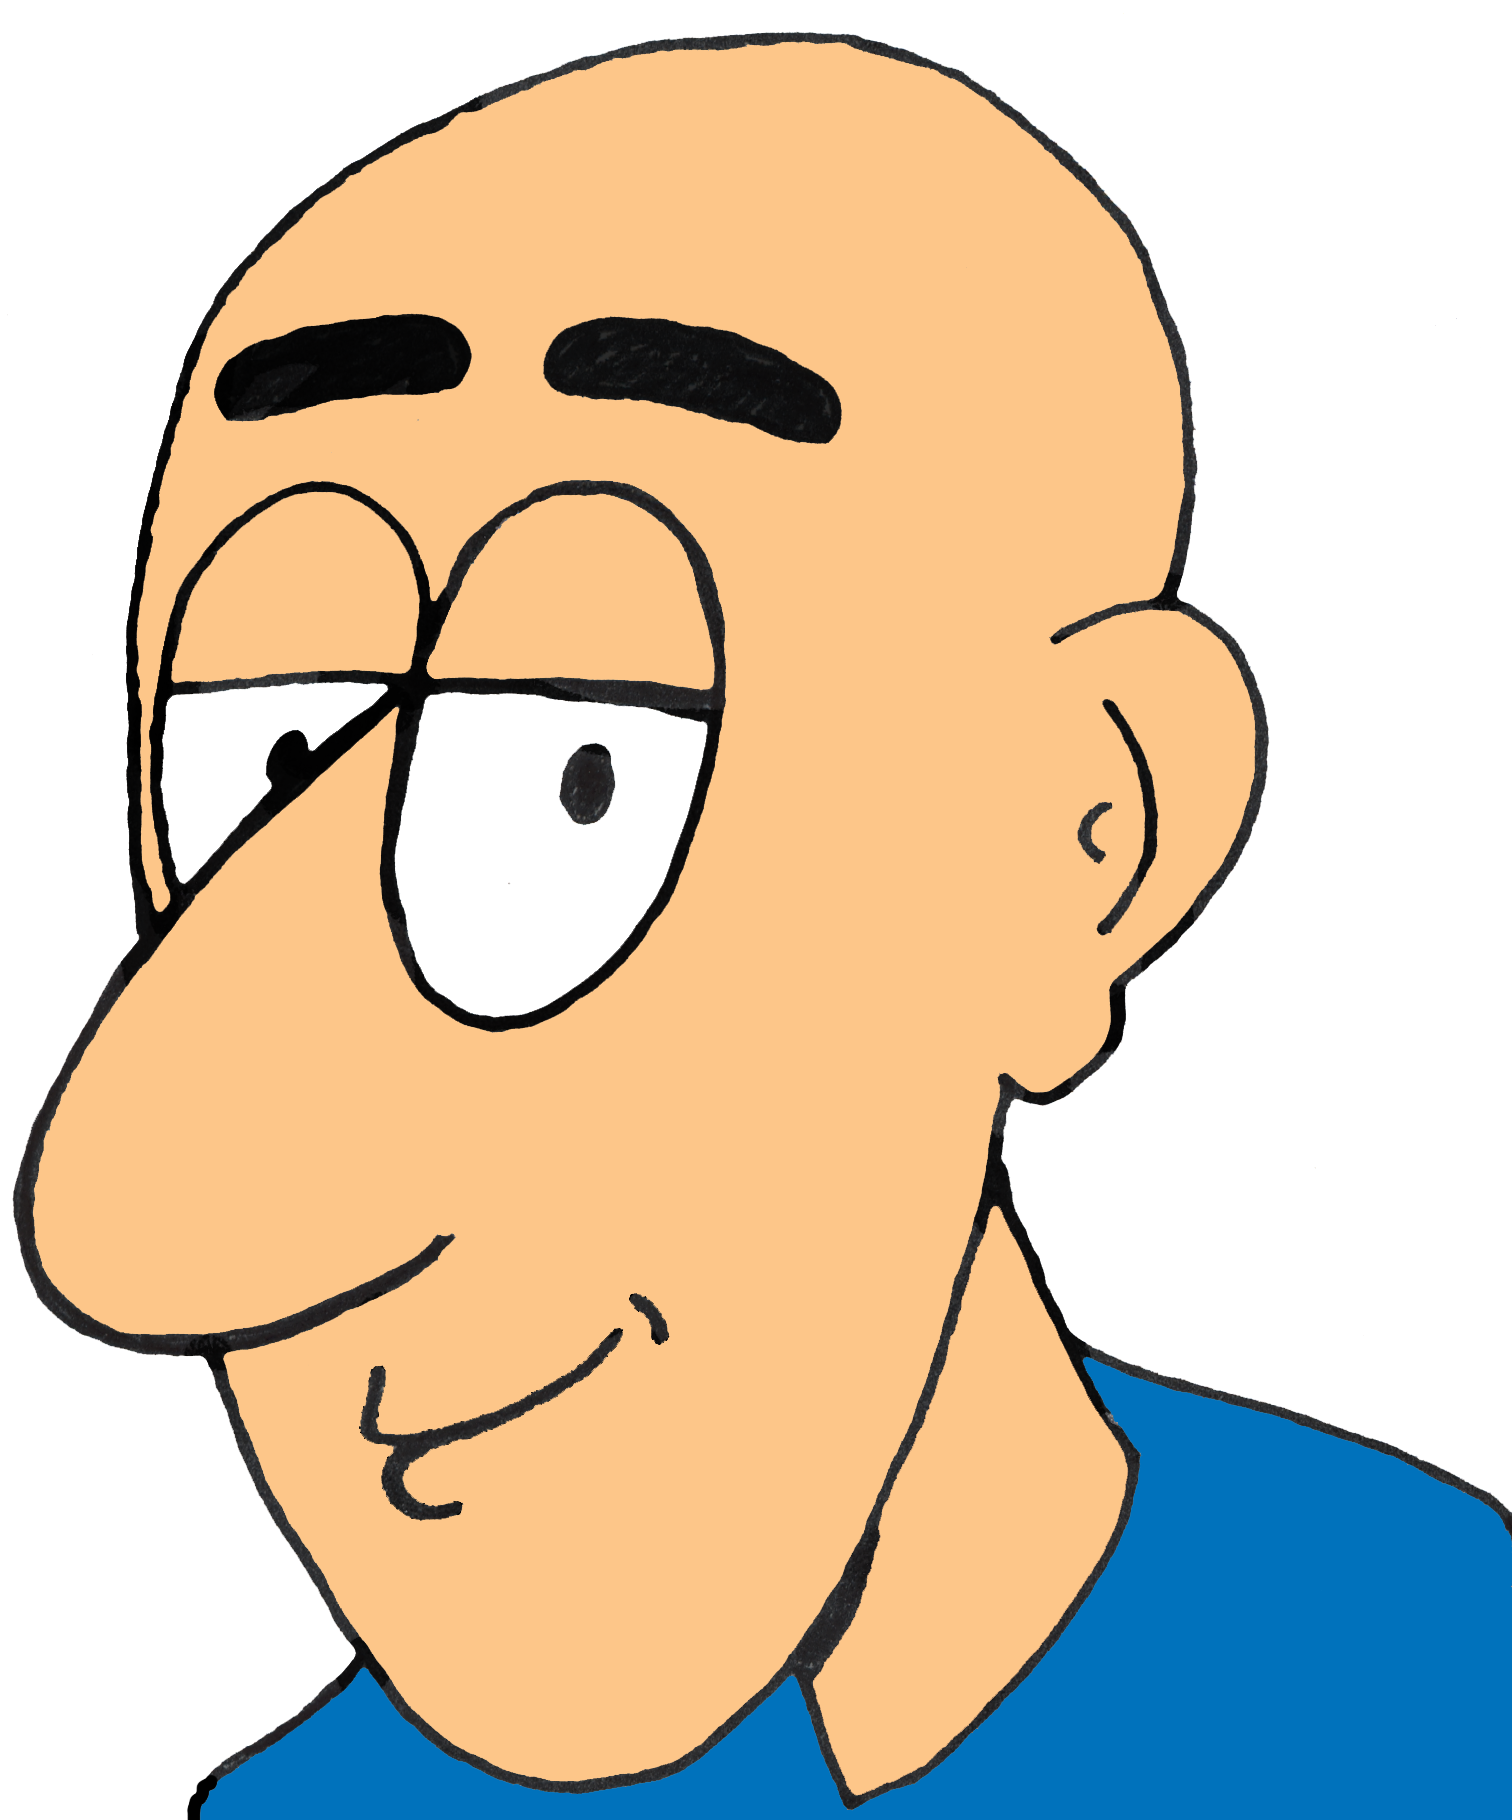 Bald dad clipart picture free Bald dad clipart - Clip Art Library picture free